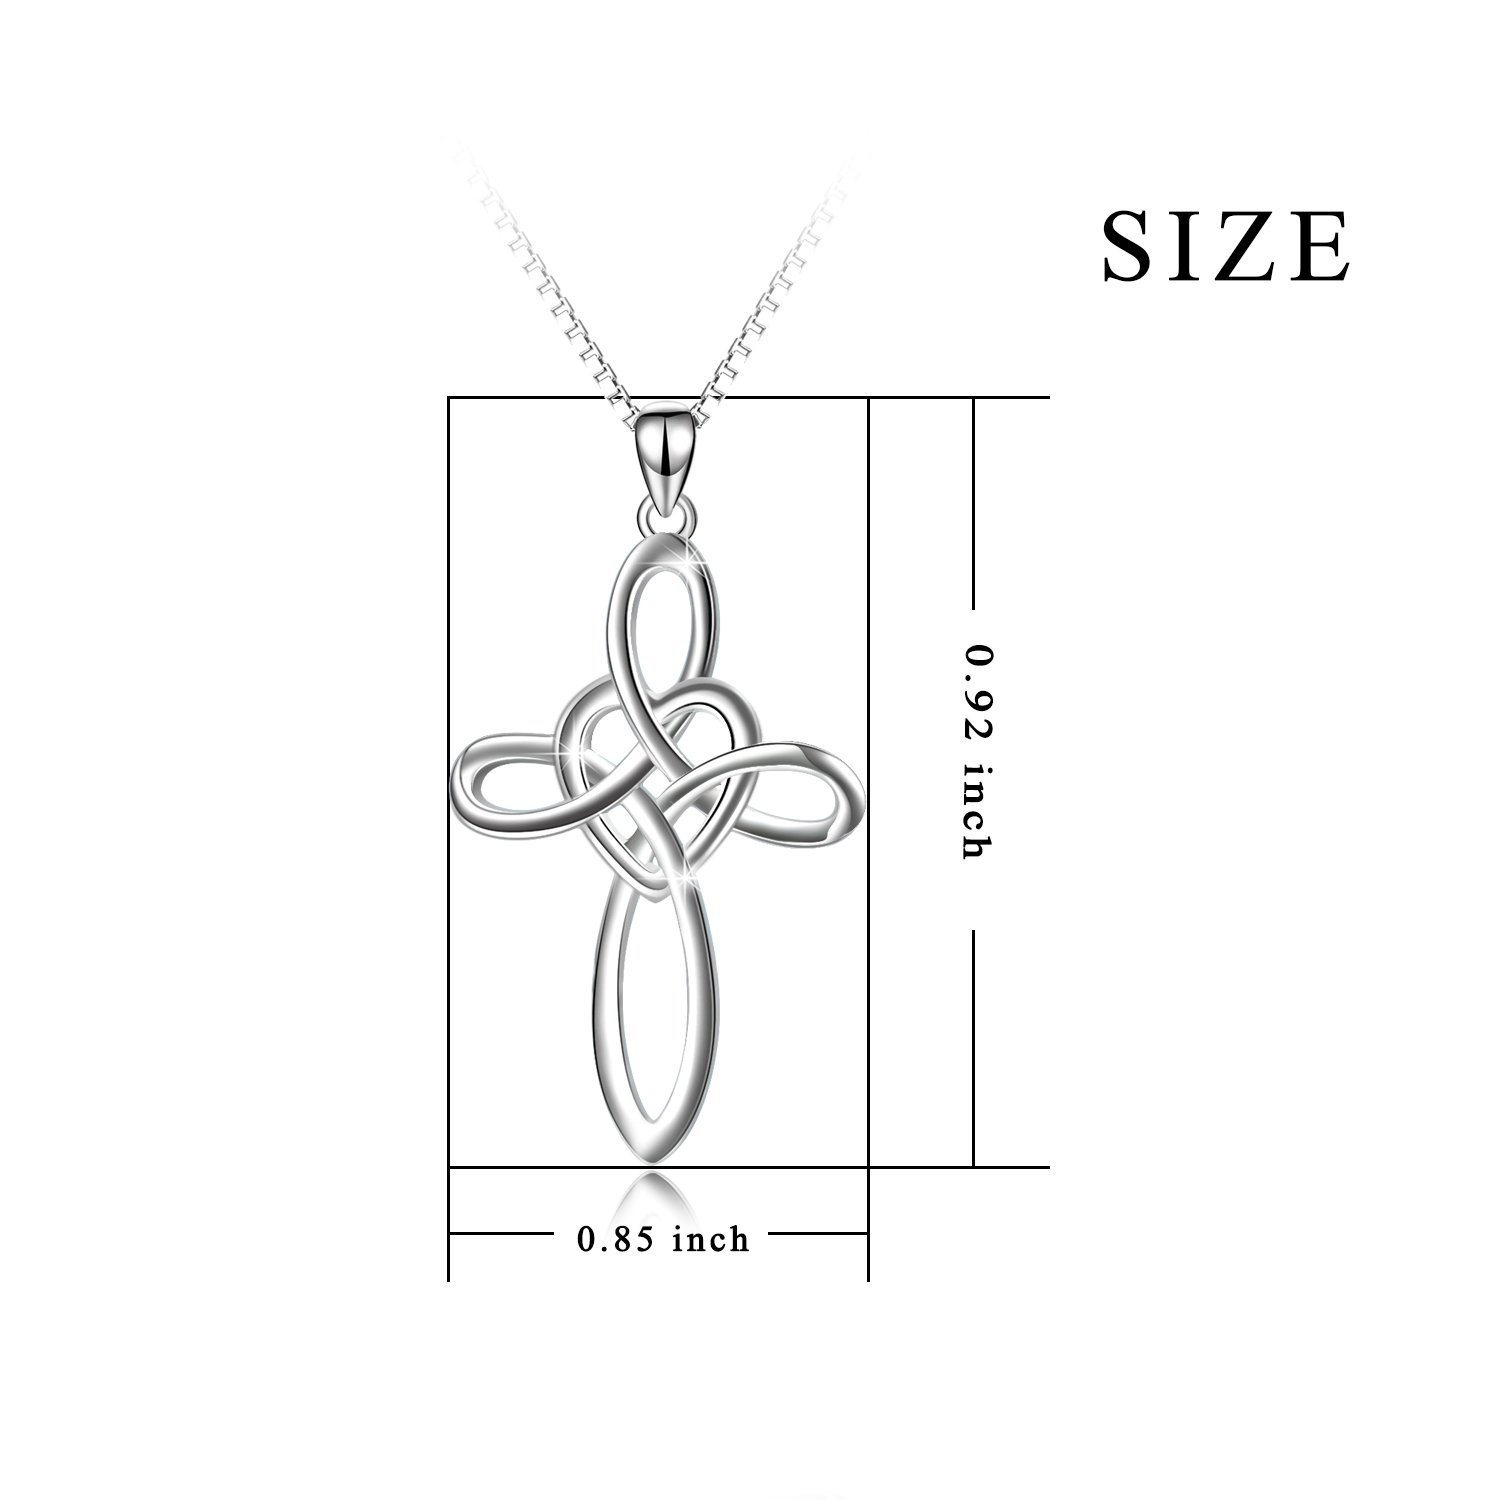 YFN Celtic Knot Cross Necklace 18k White Gold Overlay Sterling Silver Infinity Love Heart Pendant Necklace for Women Men 18'' by YFN (Image #3)